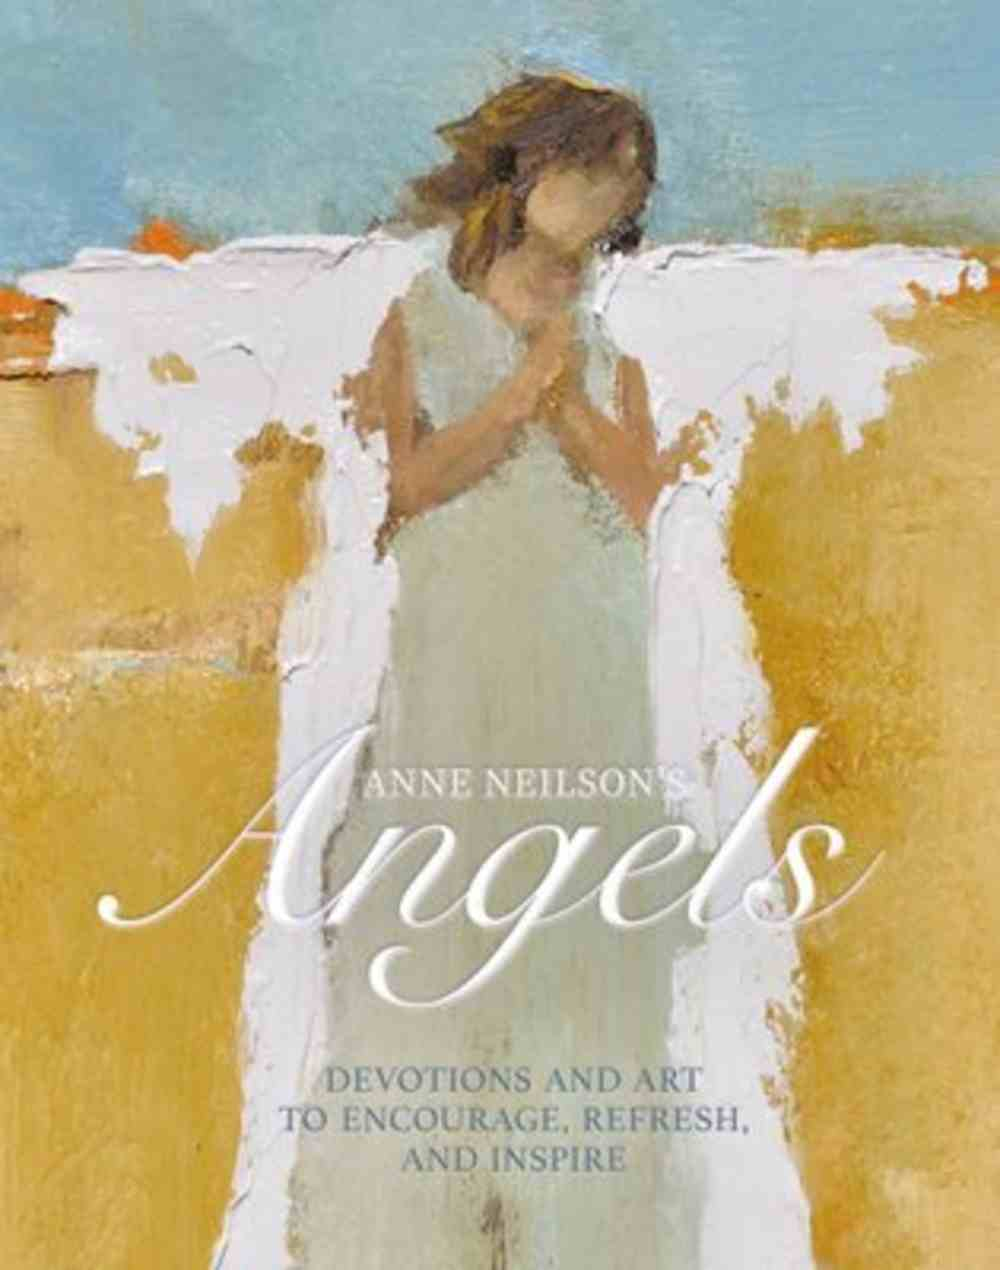 Anne Neilson's Angels: Devotions and Art to Encourage, Refresh & Inspire Hardback